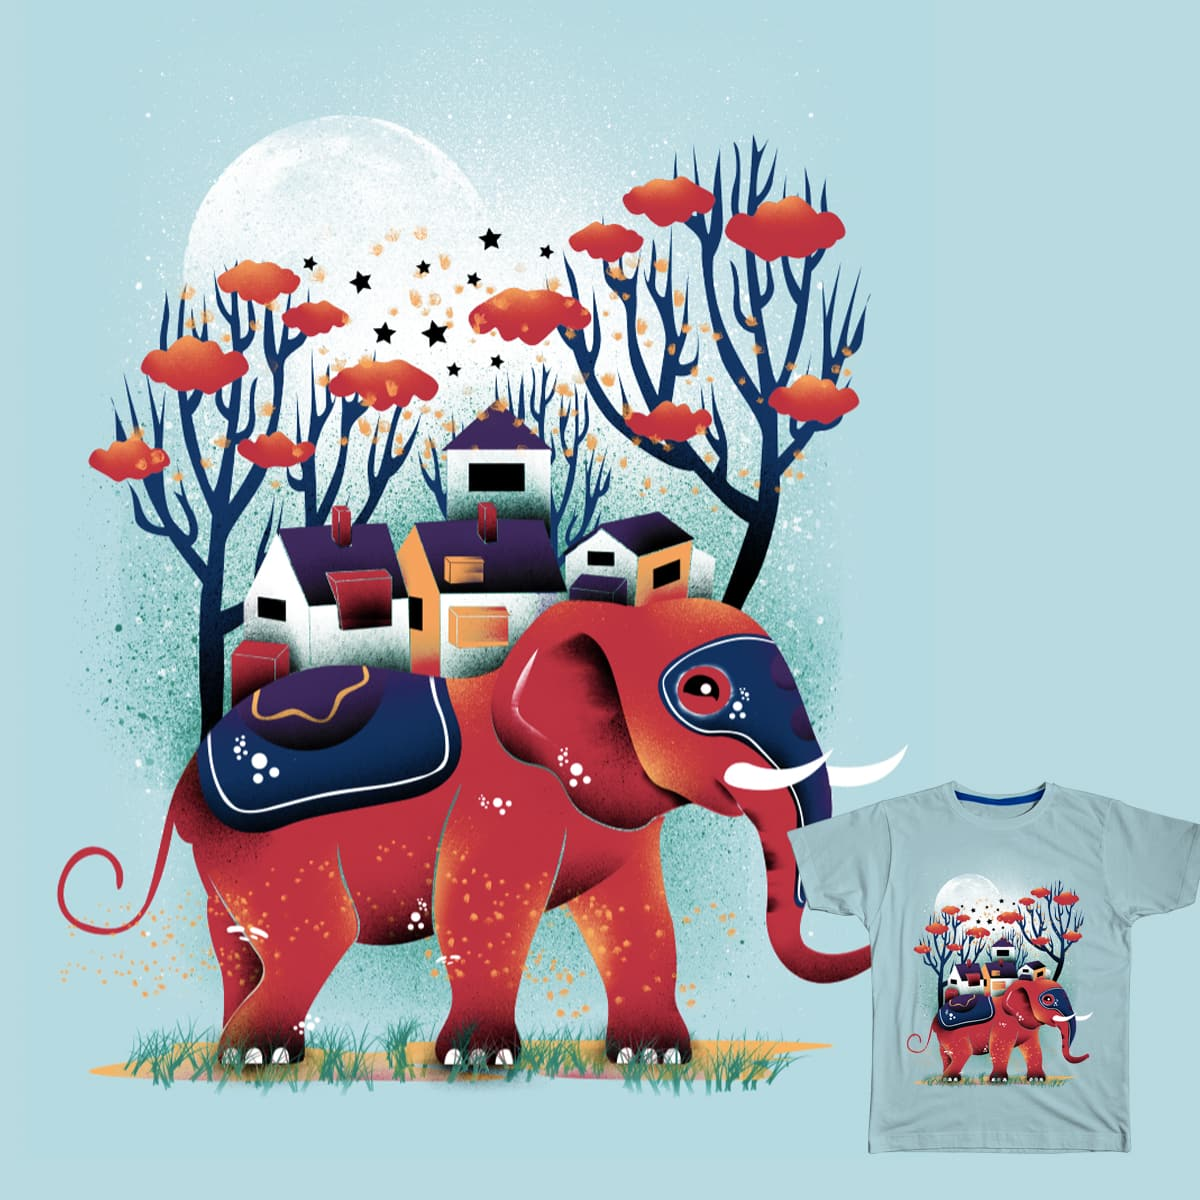 Colorful Ride by dandingeroz on Threadless